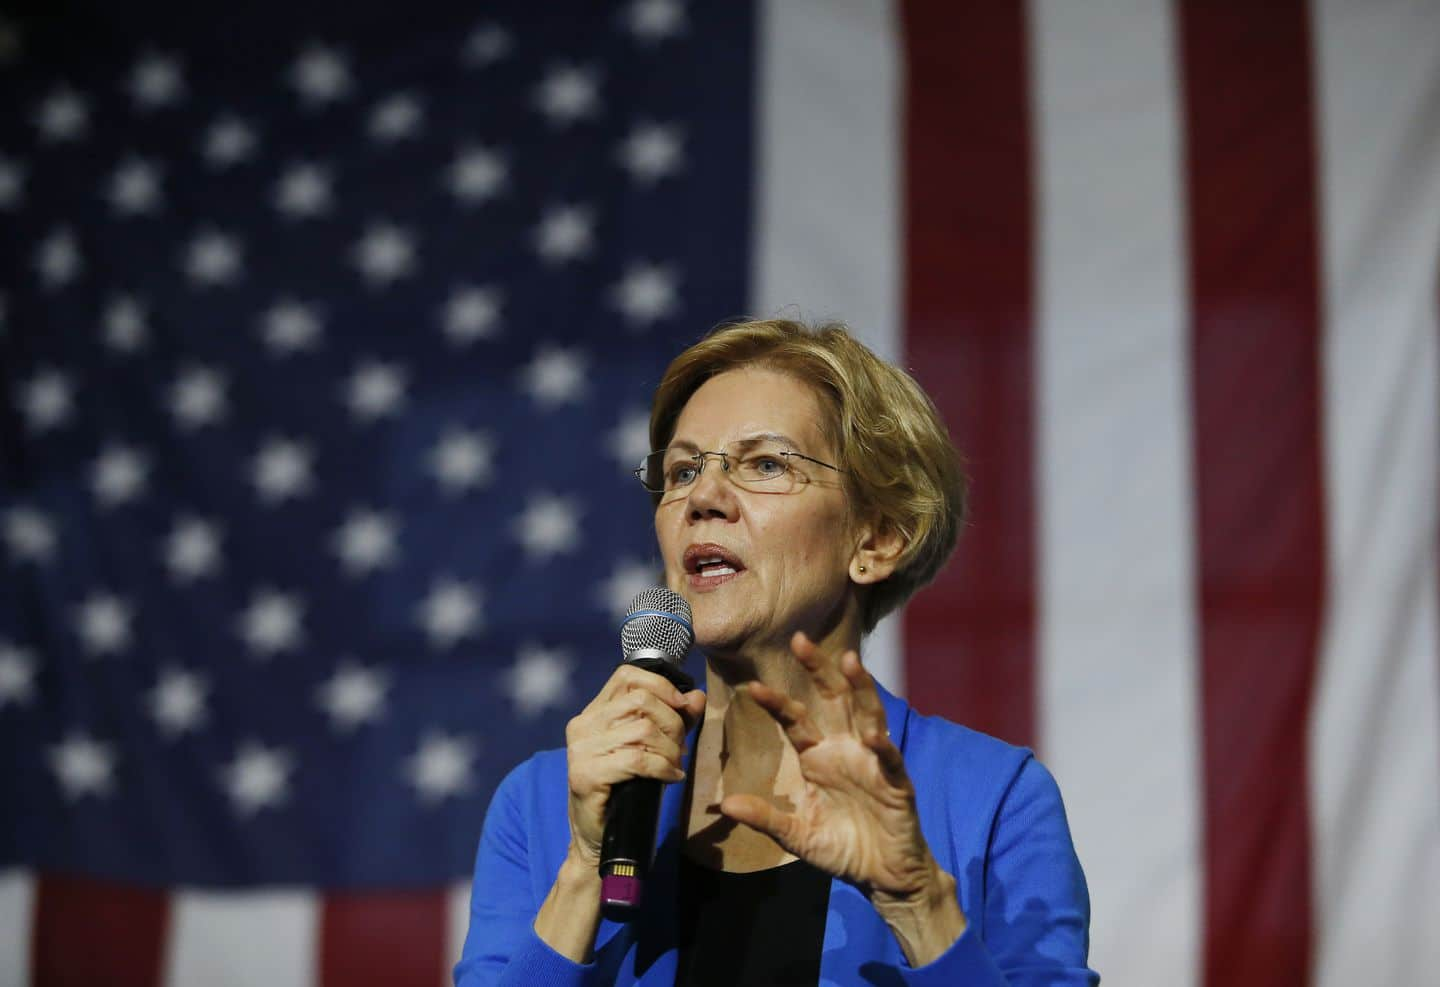 Warren against banks. The Senator in favour of cryptocurrencies